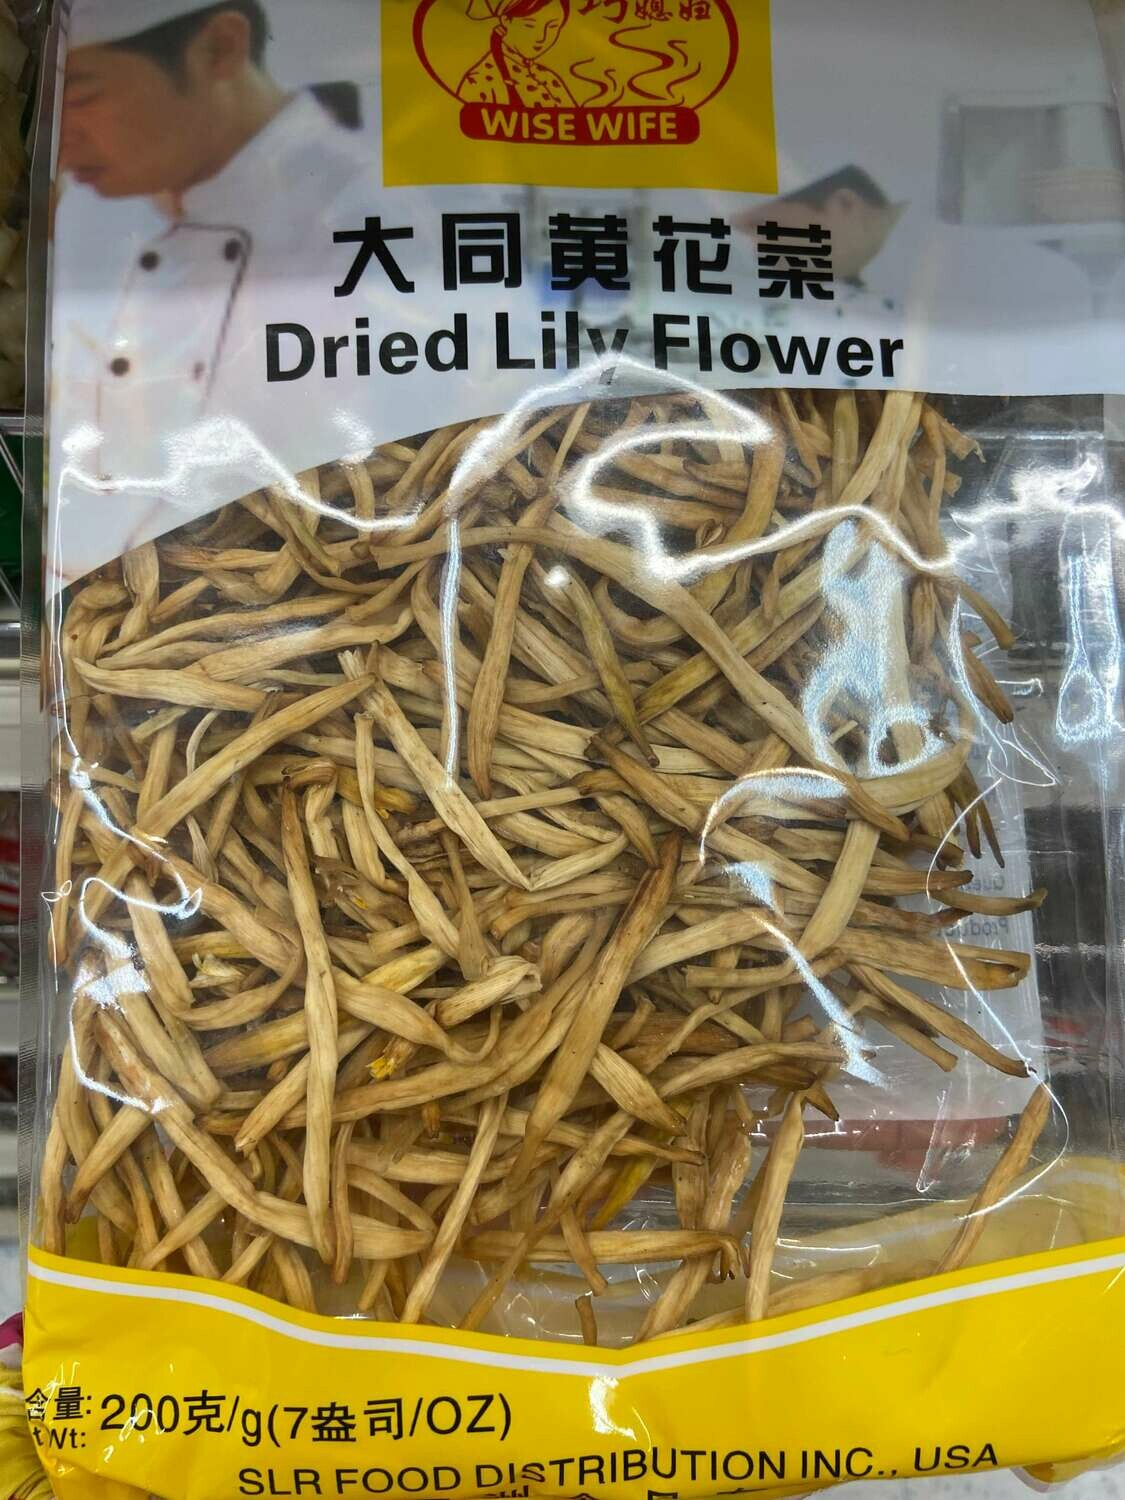 【RG】Wise Wife Dried Lili Flower Slr Food 大同黄花菜 200g